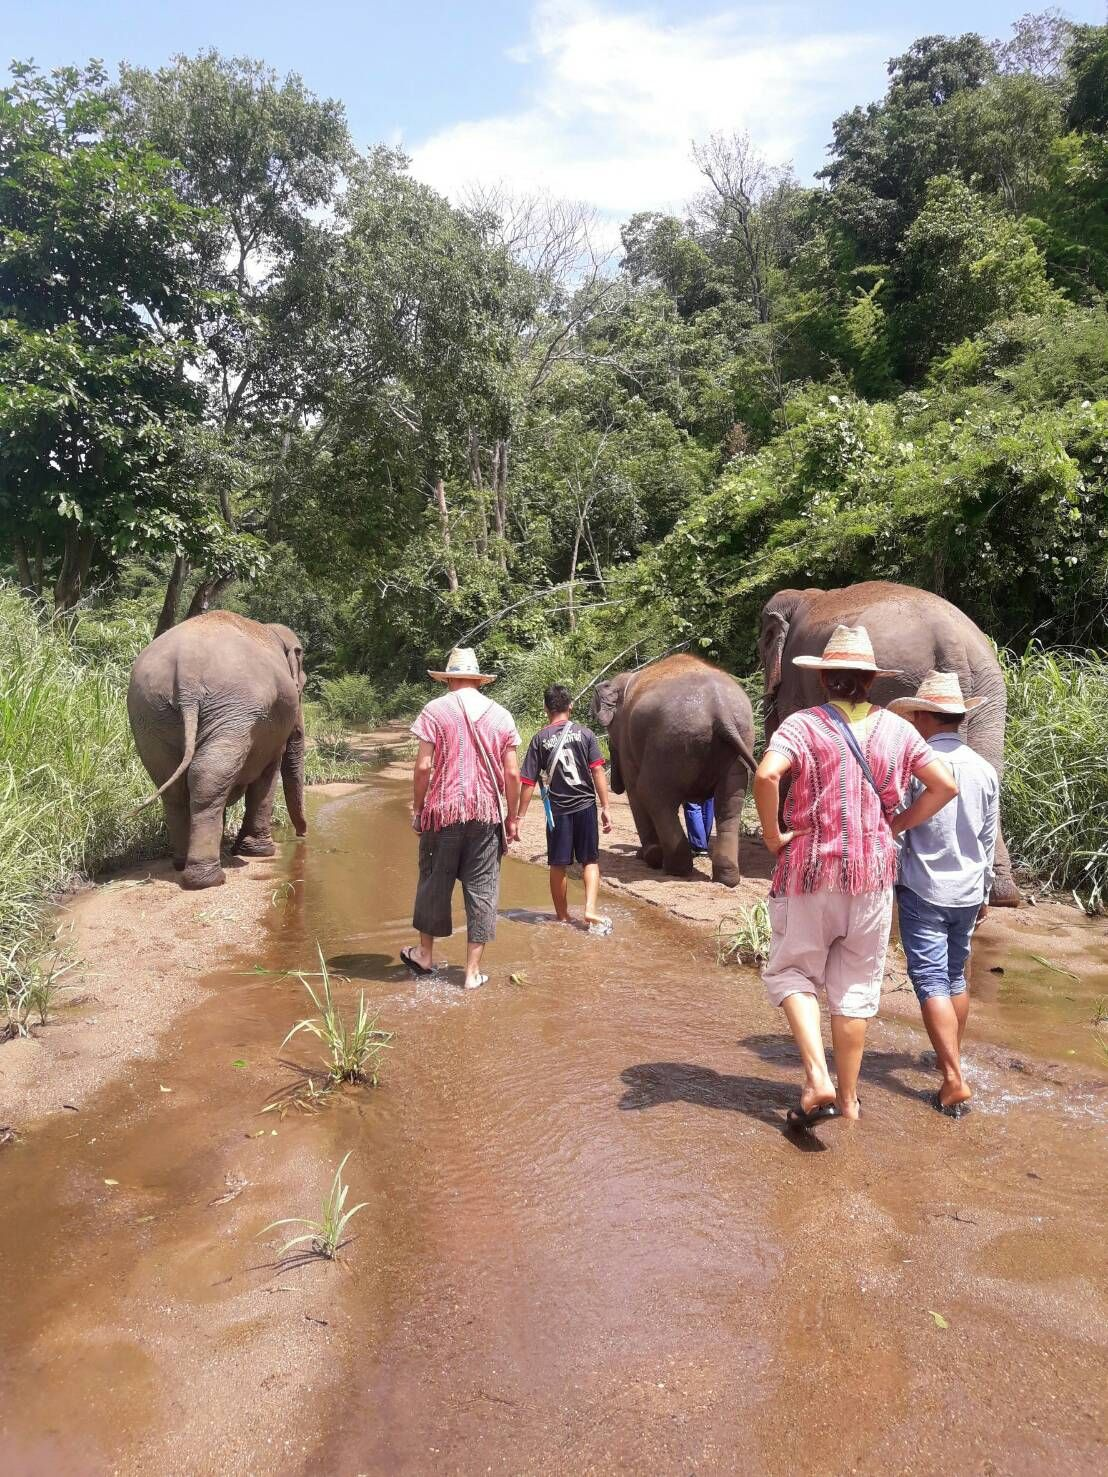 Walk with elephants to the river